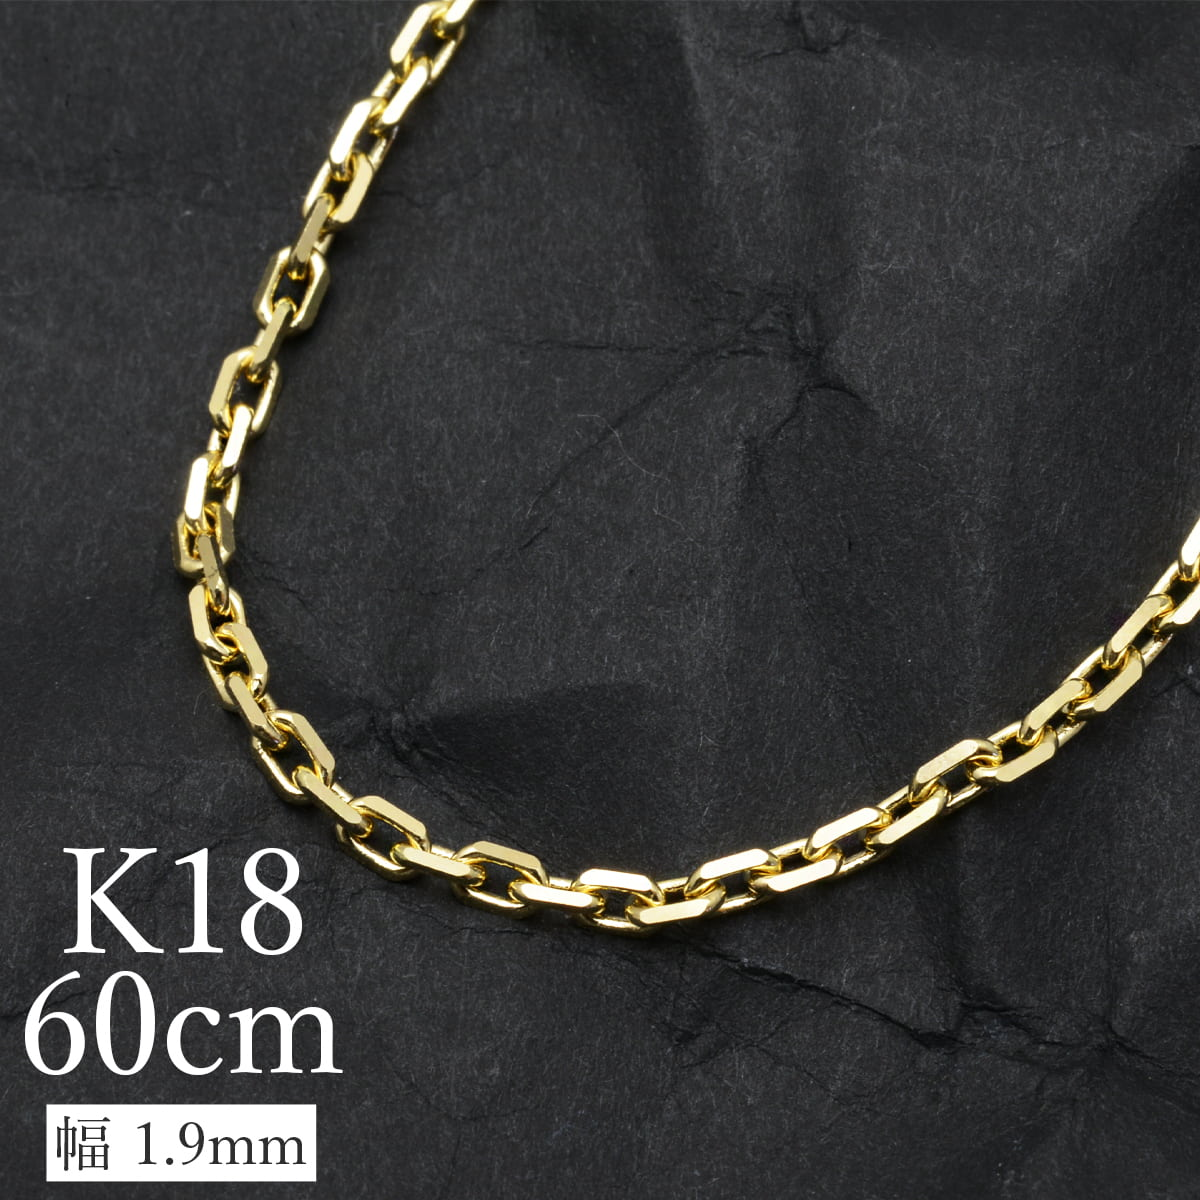 k18ネックレス K18 イエローゴールド メンズ 男性 カットアズキチェーン 幅1.9mm チェーン 60cm/ プレゼント ギフト gold necklace ach1662c60